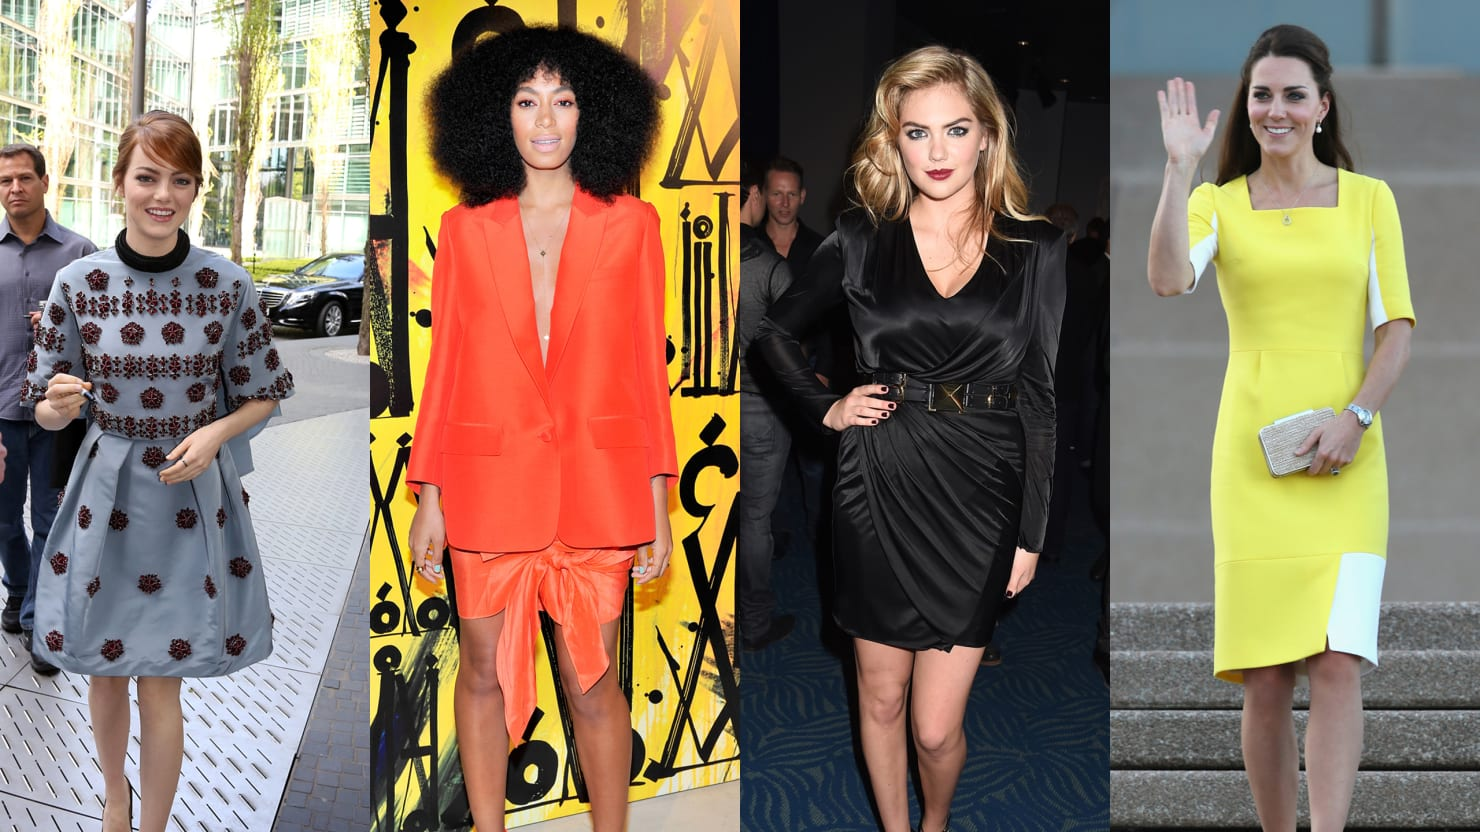 Best and worst dressed celebrities of the week | Stuff.co.nz